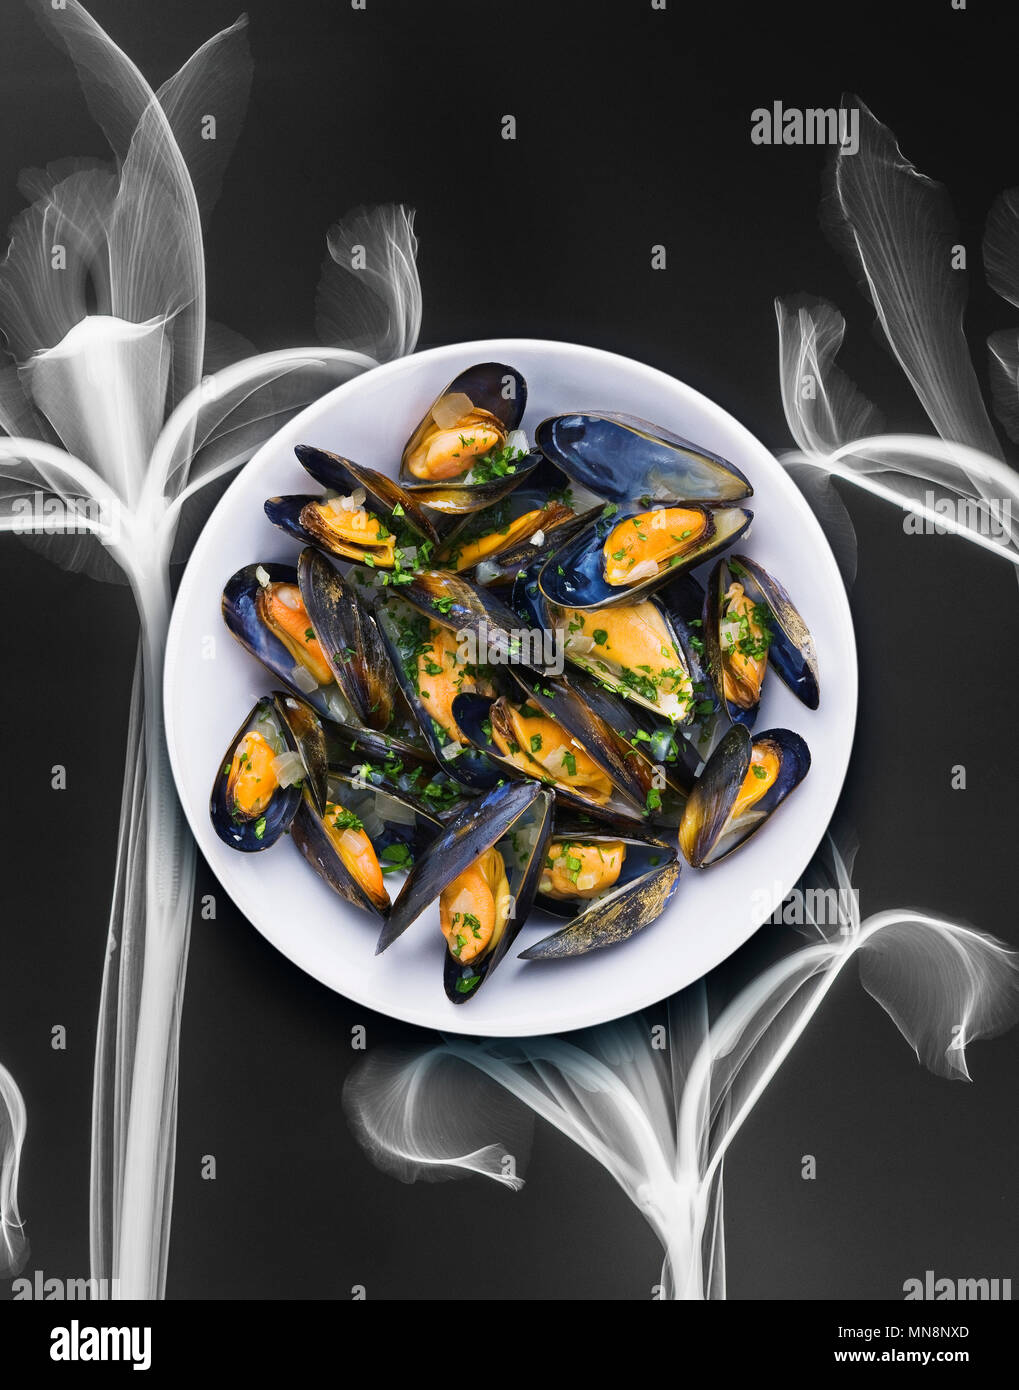 Cooked mussels served in a bowl. Over the top view - Stock Image